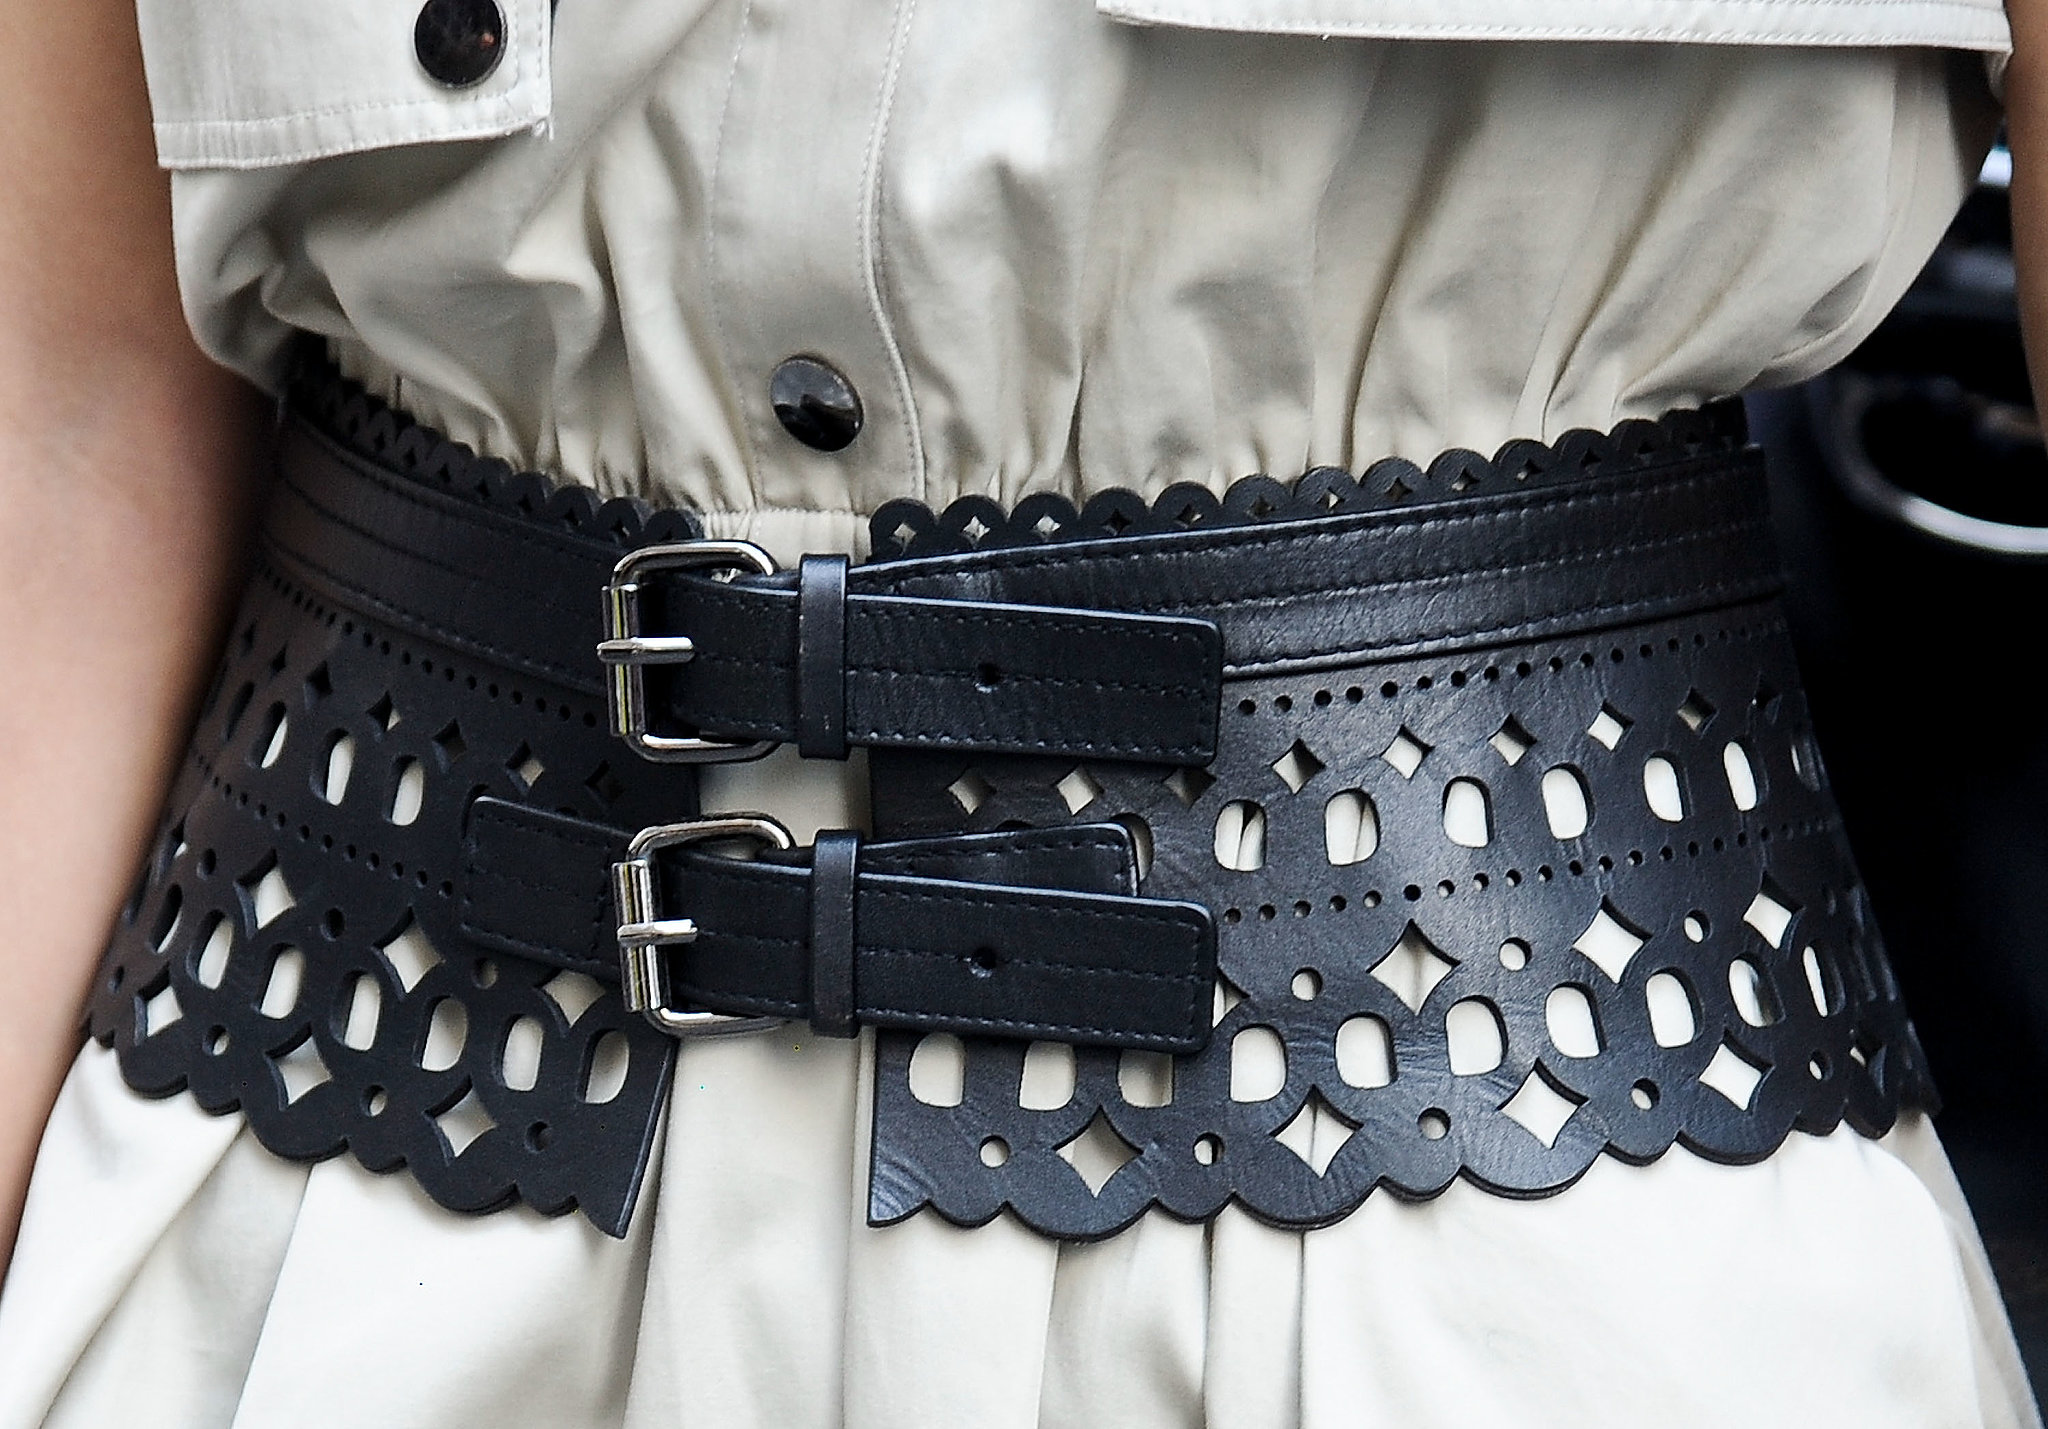 It's all about the detail on this leather belt.